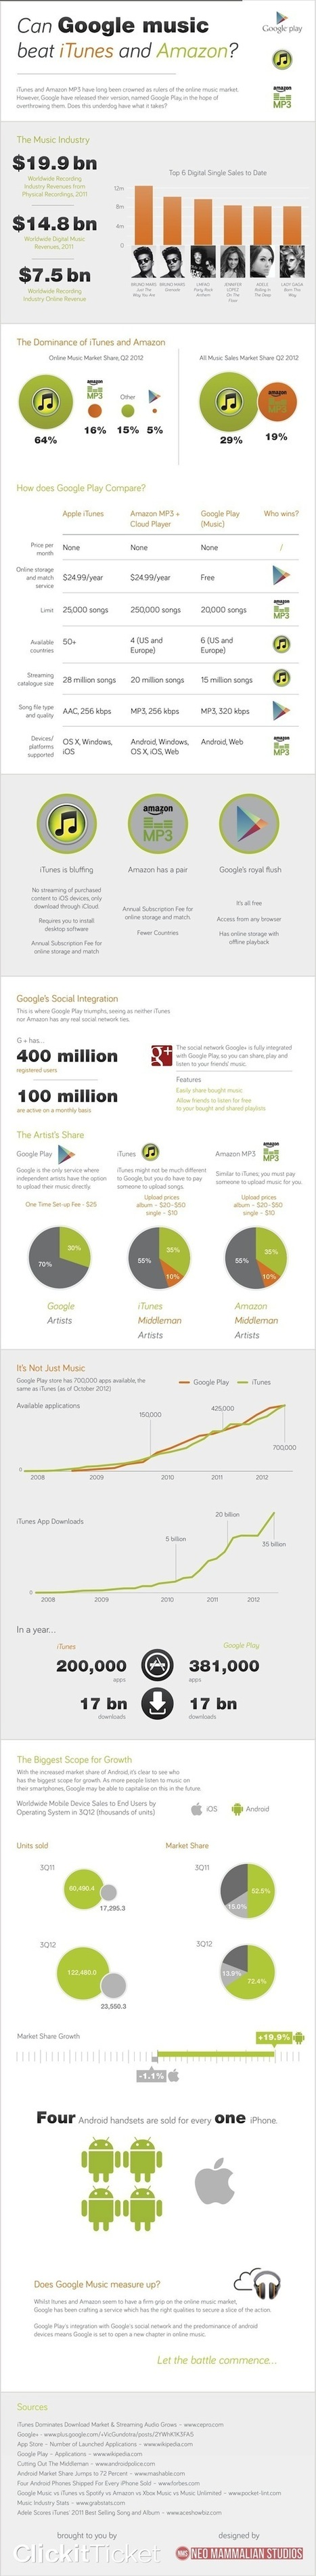 INFOGRAPHIC: Can Google Music Beat iTunes and Amazon | MUSIC:ENTER | Scoop.it